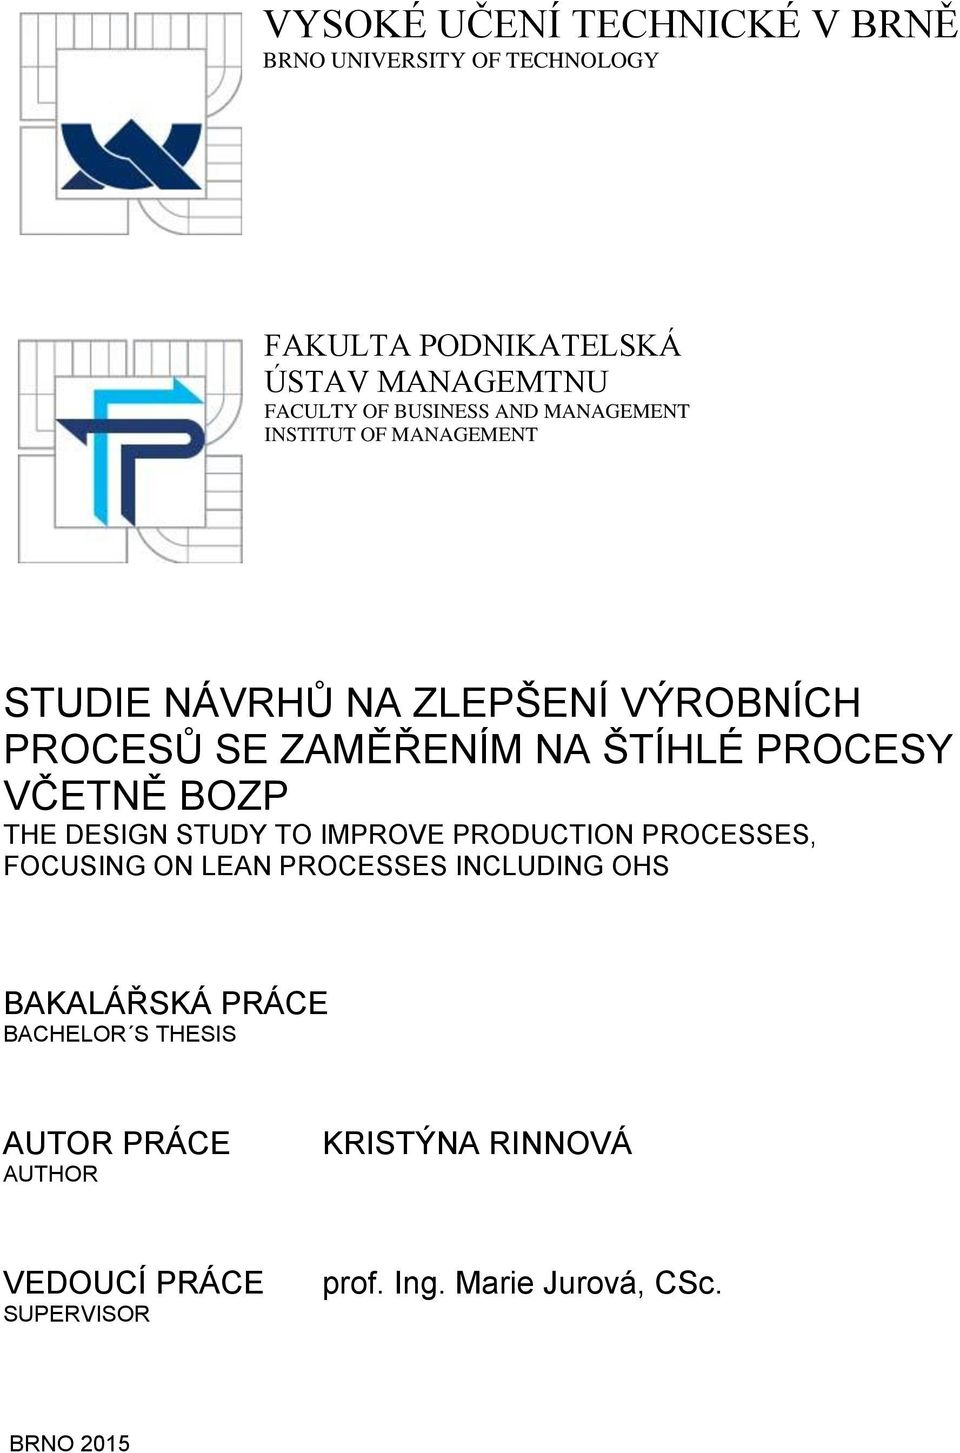 PROCESY VČETNĚ BOZP THE DESIGN STUDY TO IMPROVE PRODUCTION PROCESSES, FOCUSING ON LEAN PROCESSES INCLUDING OHS